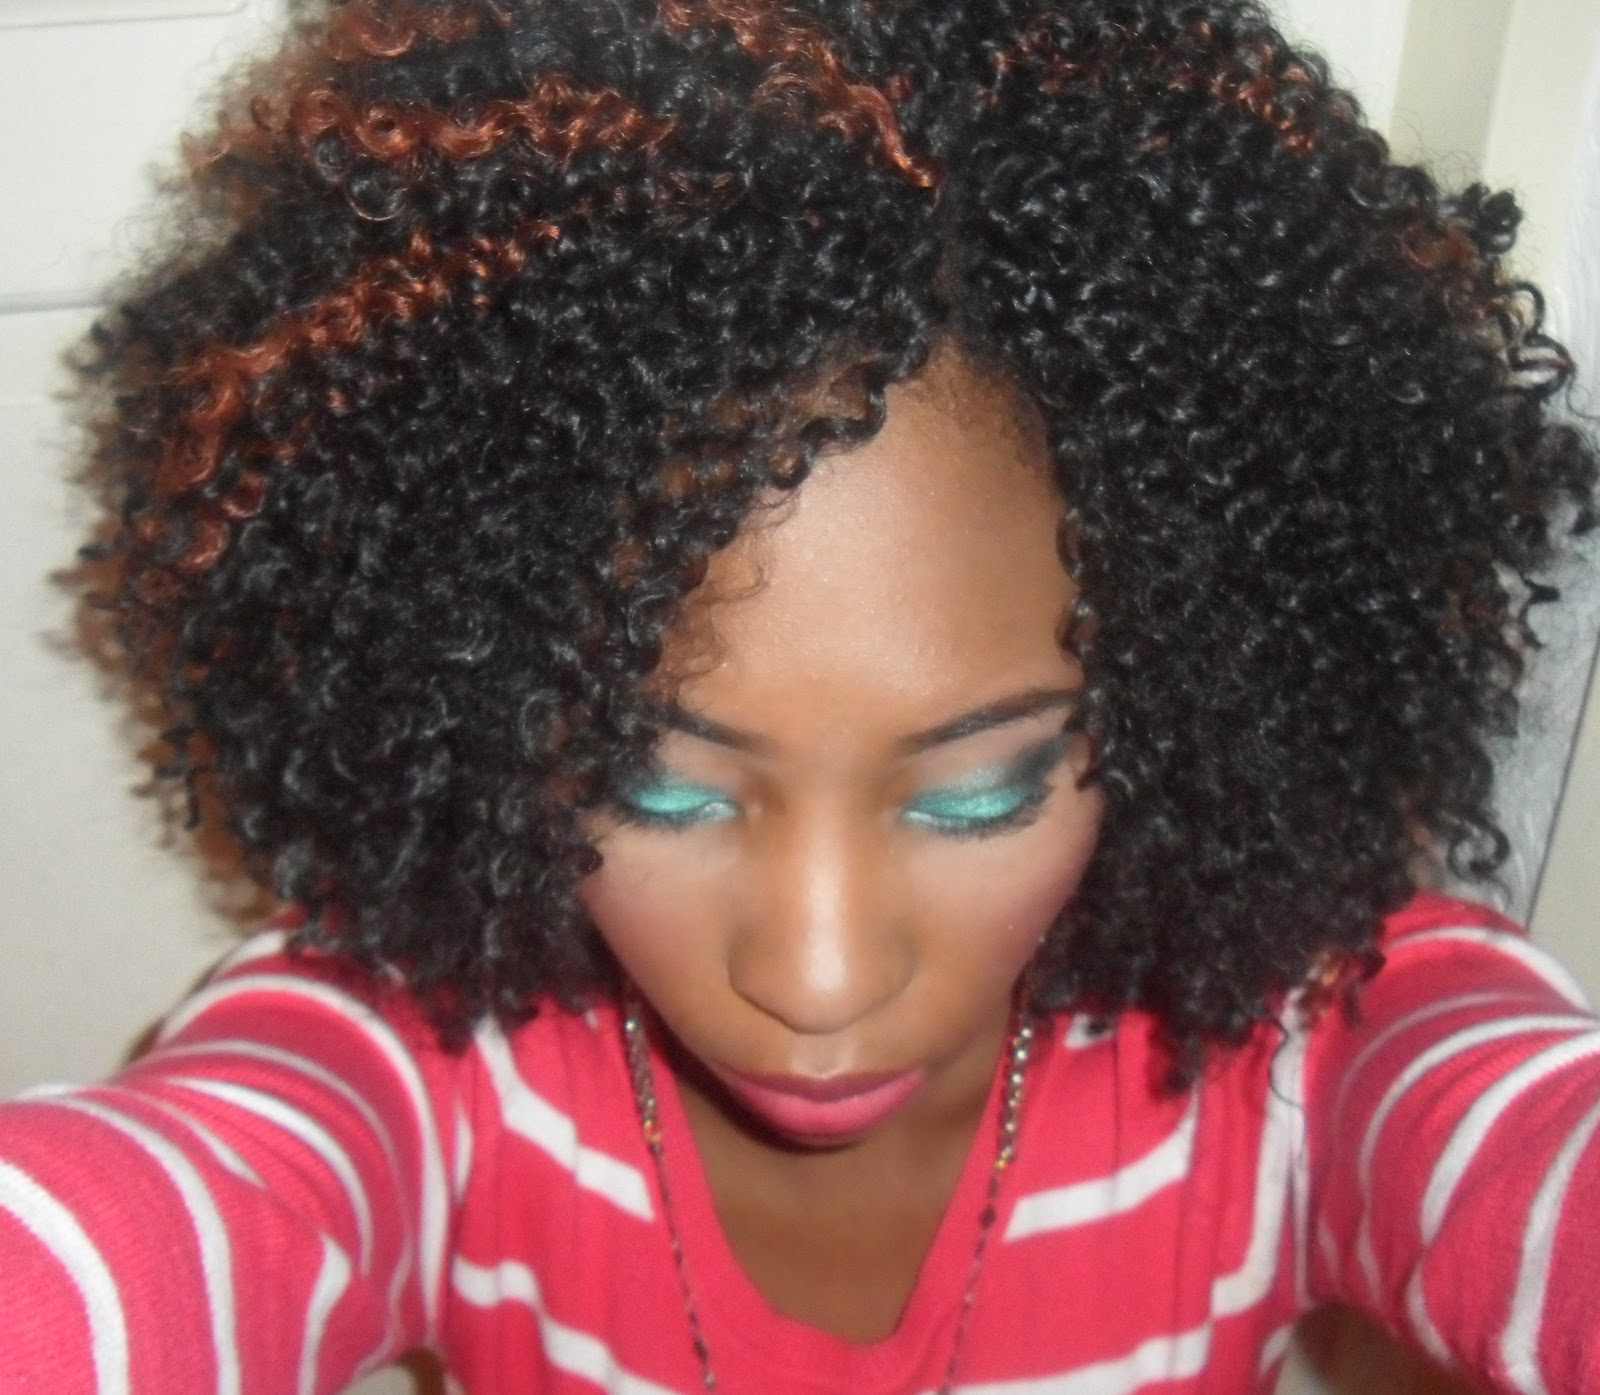 Crochet Hair How To : Any questions, e-mail me at nubianpride@live.co.uk / tweet me @Ray ...